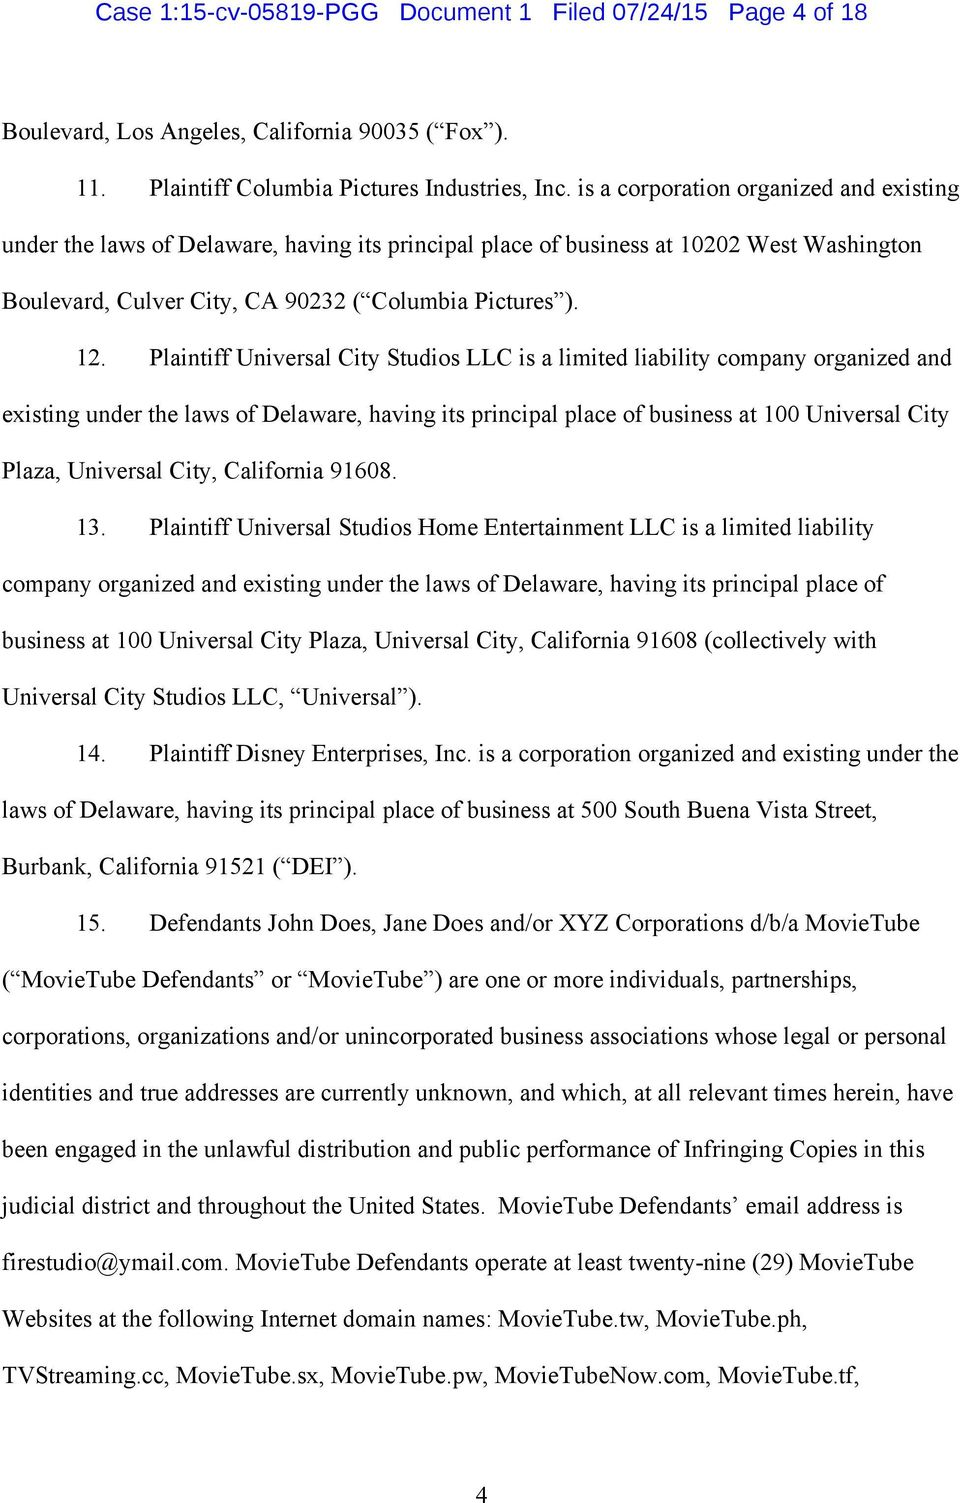 Plaintiff Universal City Studios LLC is a limited liability company organized and existing under the laws of Delaware, having its principal place of business at 100 Universal City Plaza, Universal